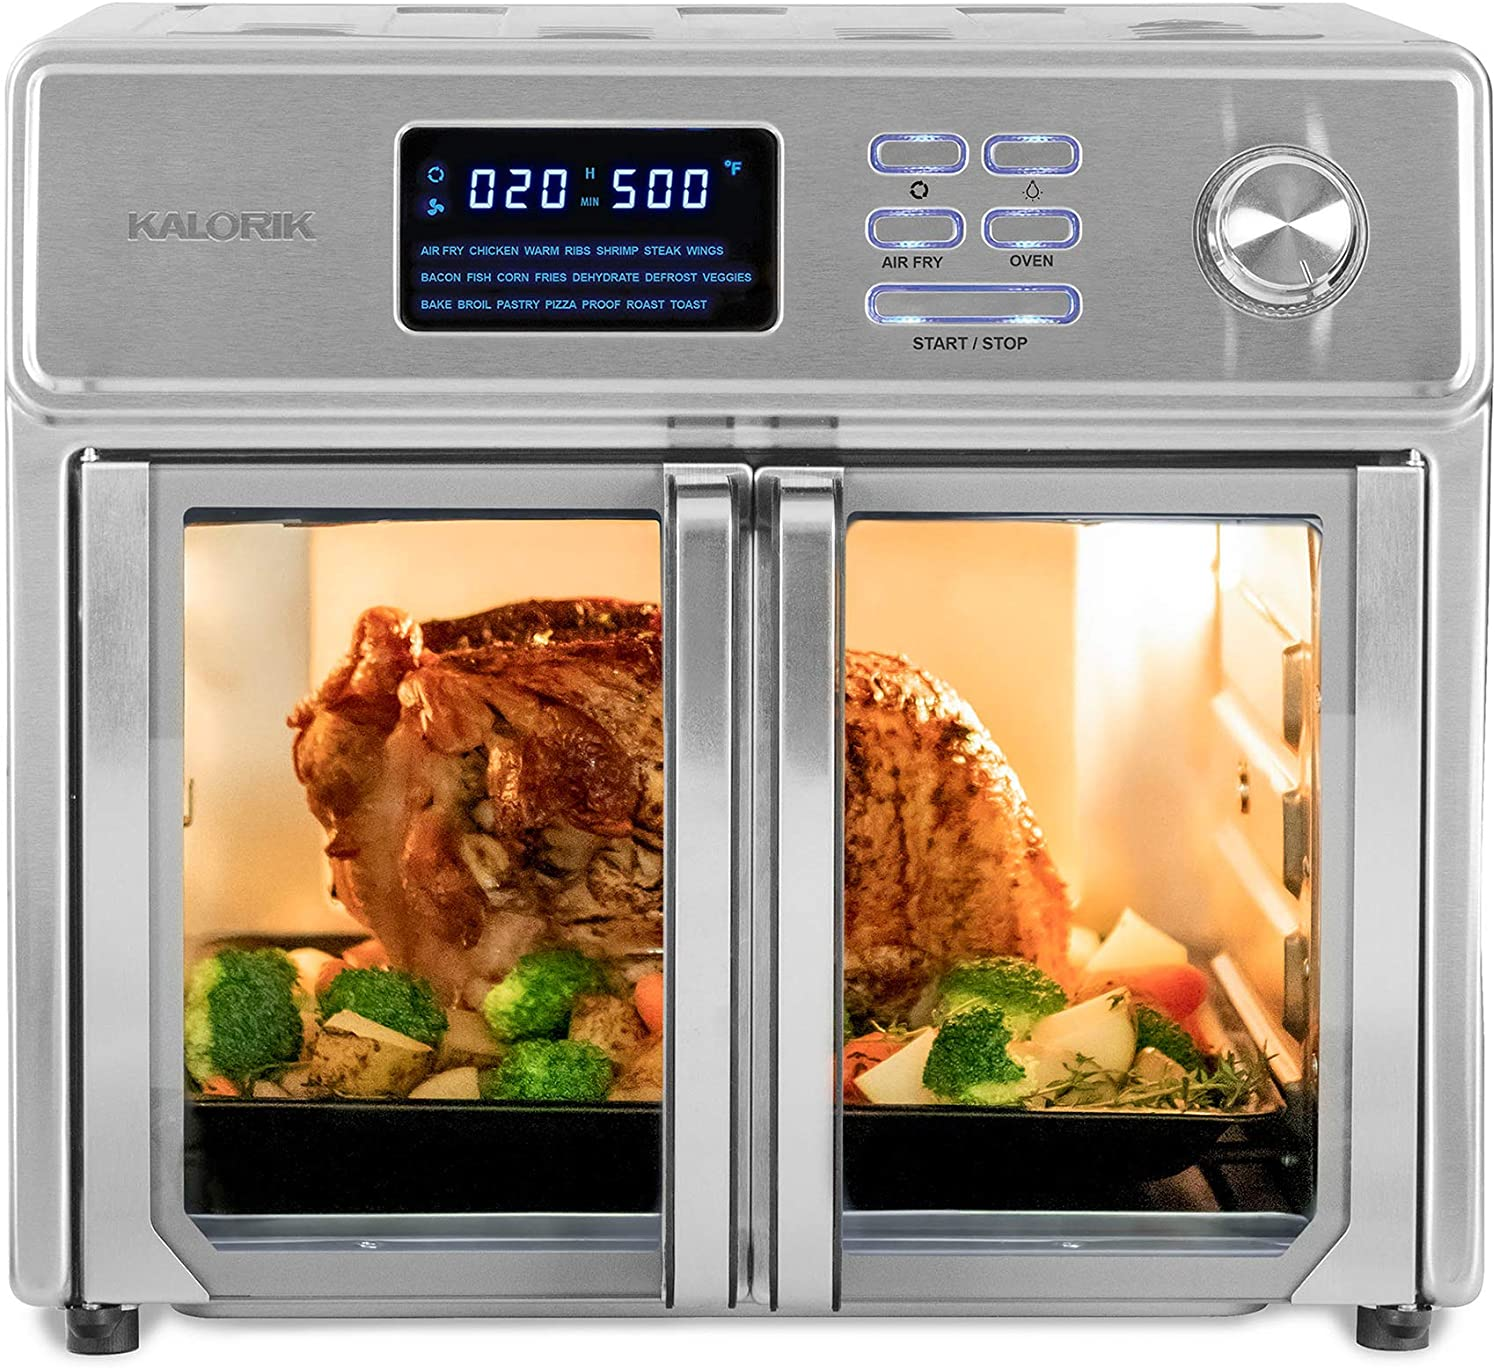 Review of - Kalorik 26 QT Digital Maxx Air Fryer Oven Stainless Steel AFO 46045 SS